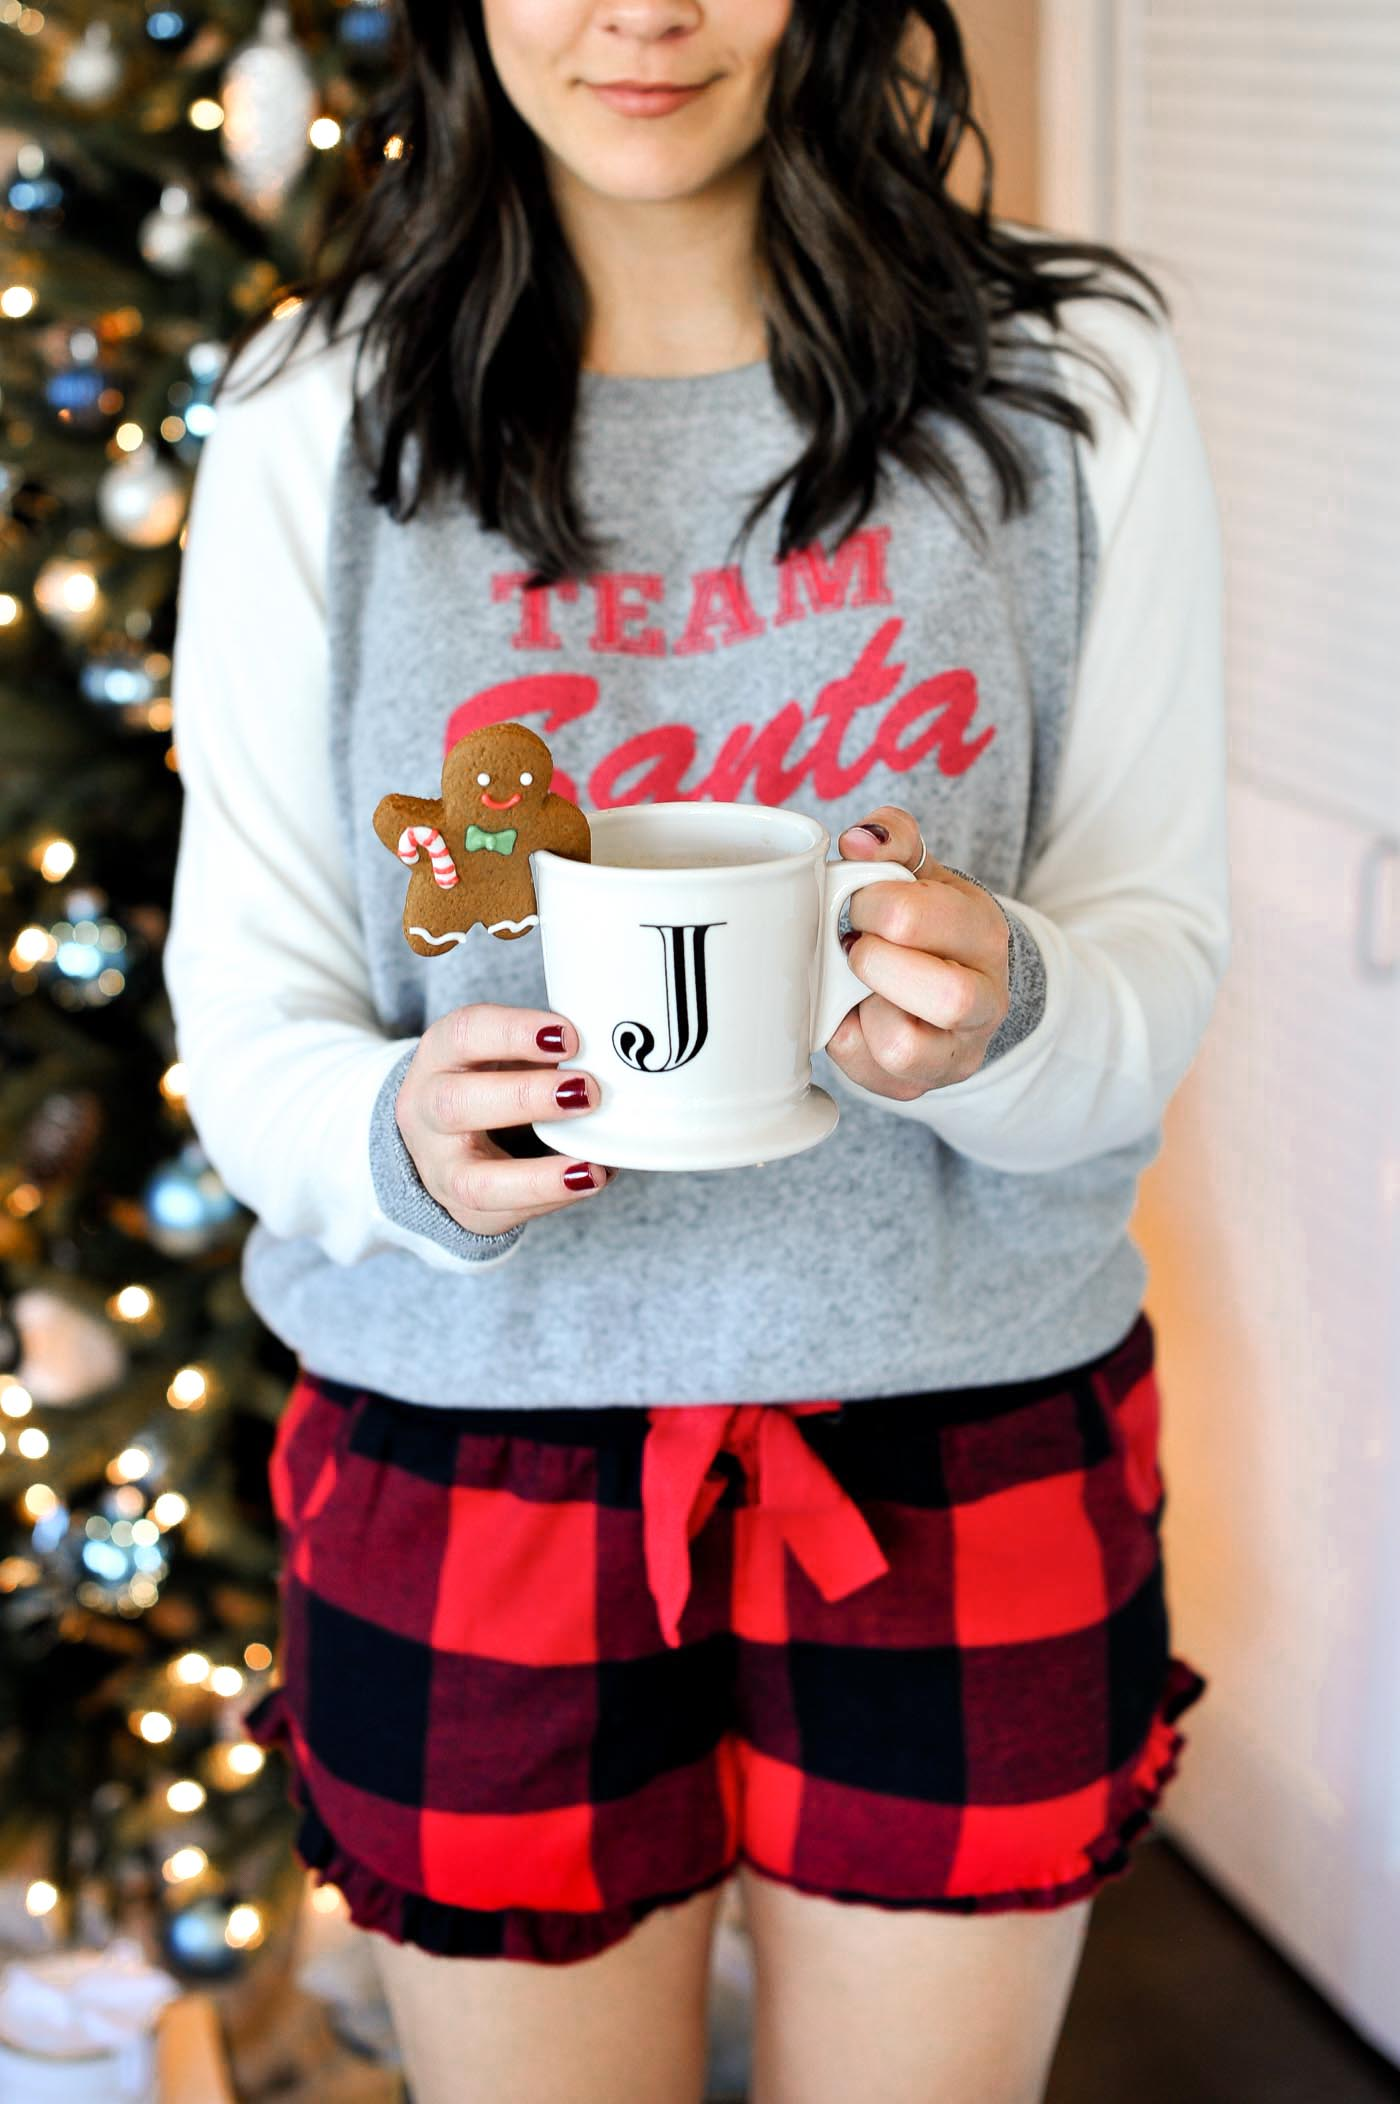 Best gourmet food gifts to give, holiday food gifts - My Style Vita @mystylevita